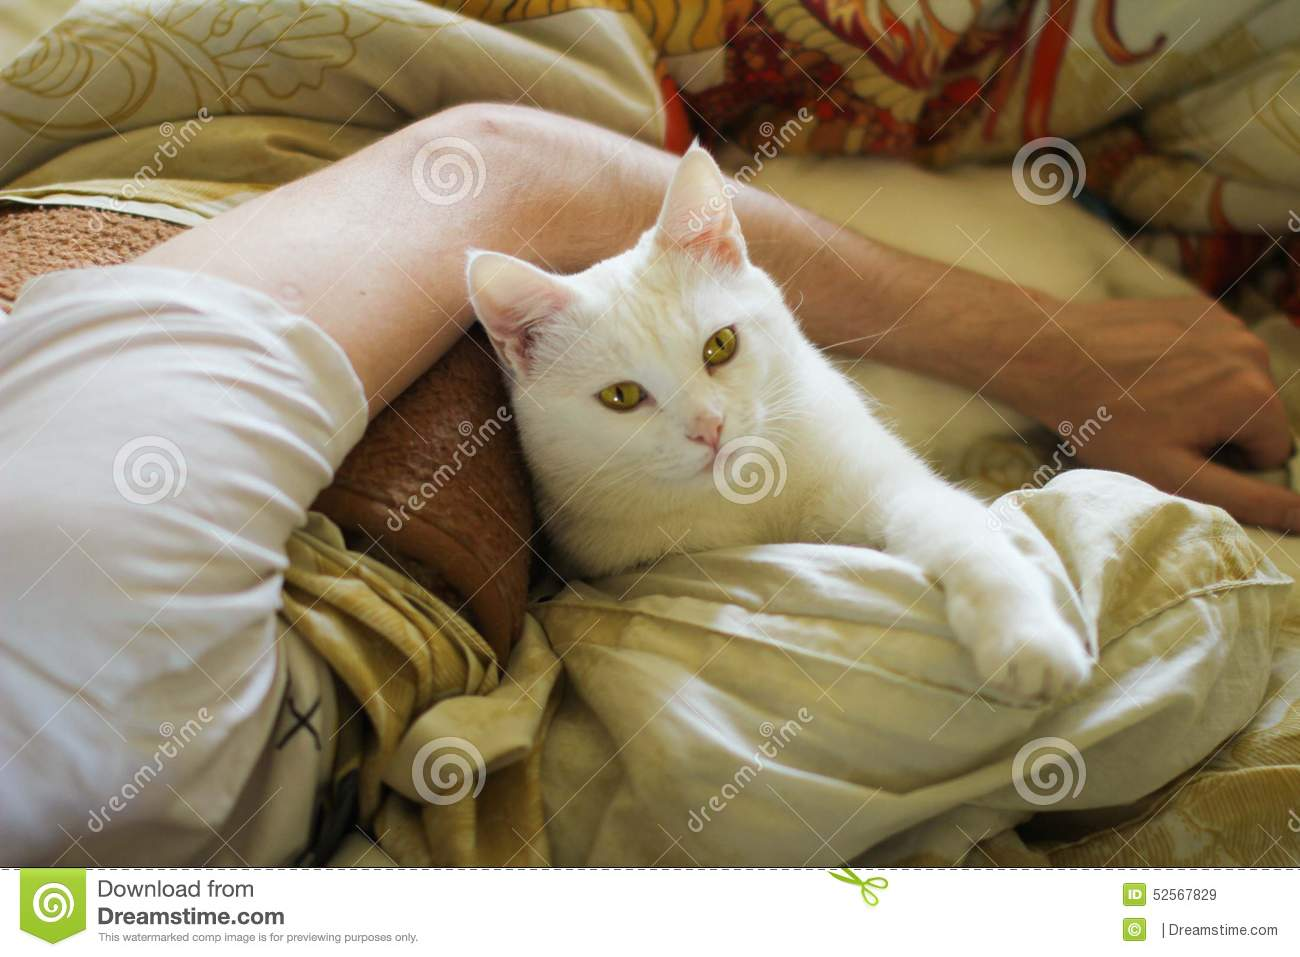 animal, pet, cat, white, bed, bedding, hand, mans hand, hug, serious, bodyguard